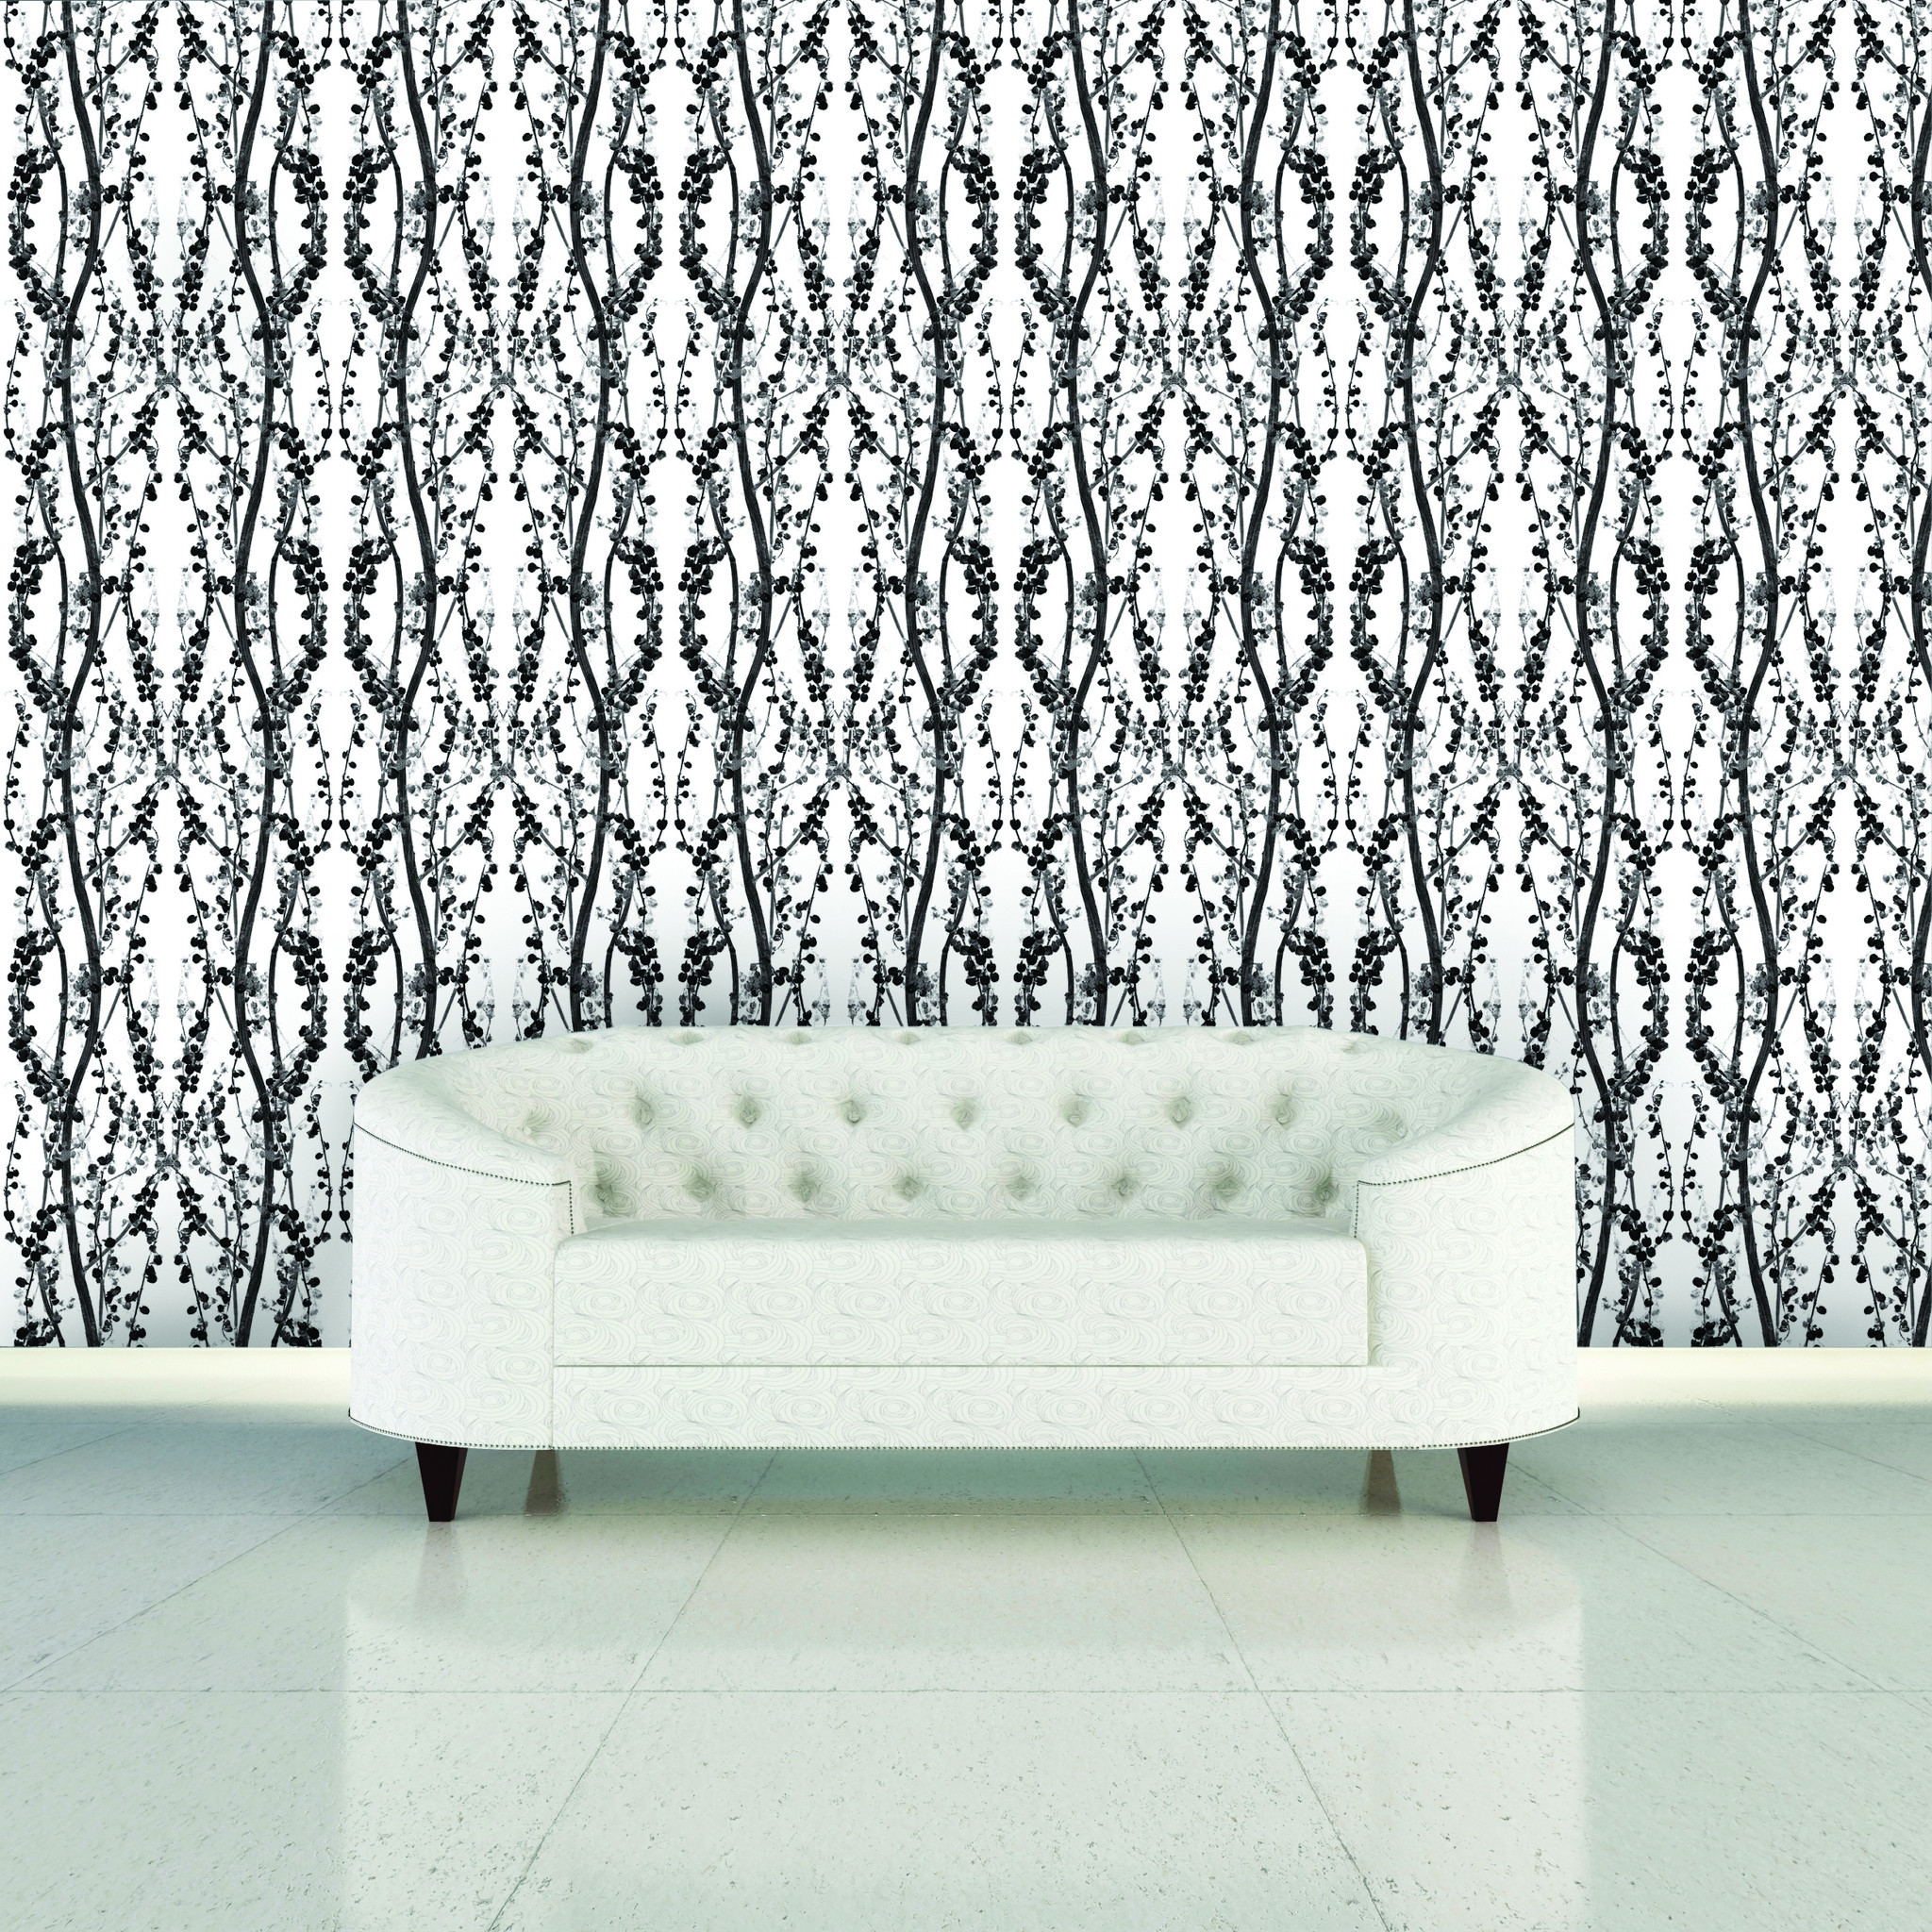 wonderful tempaper wallpaper in chic motif design matched with white tile floor plus white sofa for interesting living room decor ideas